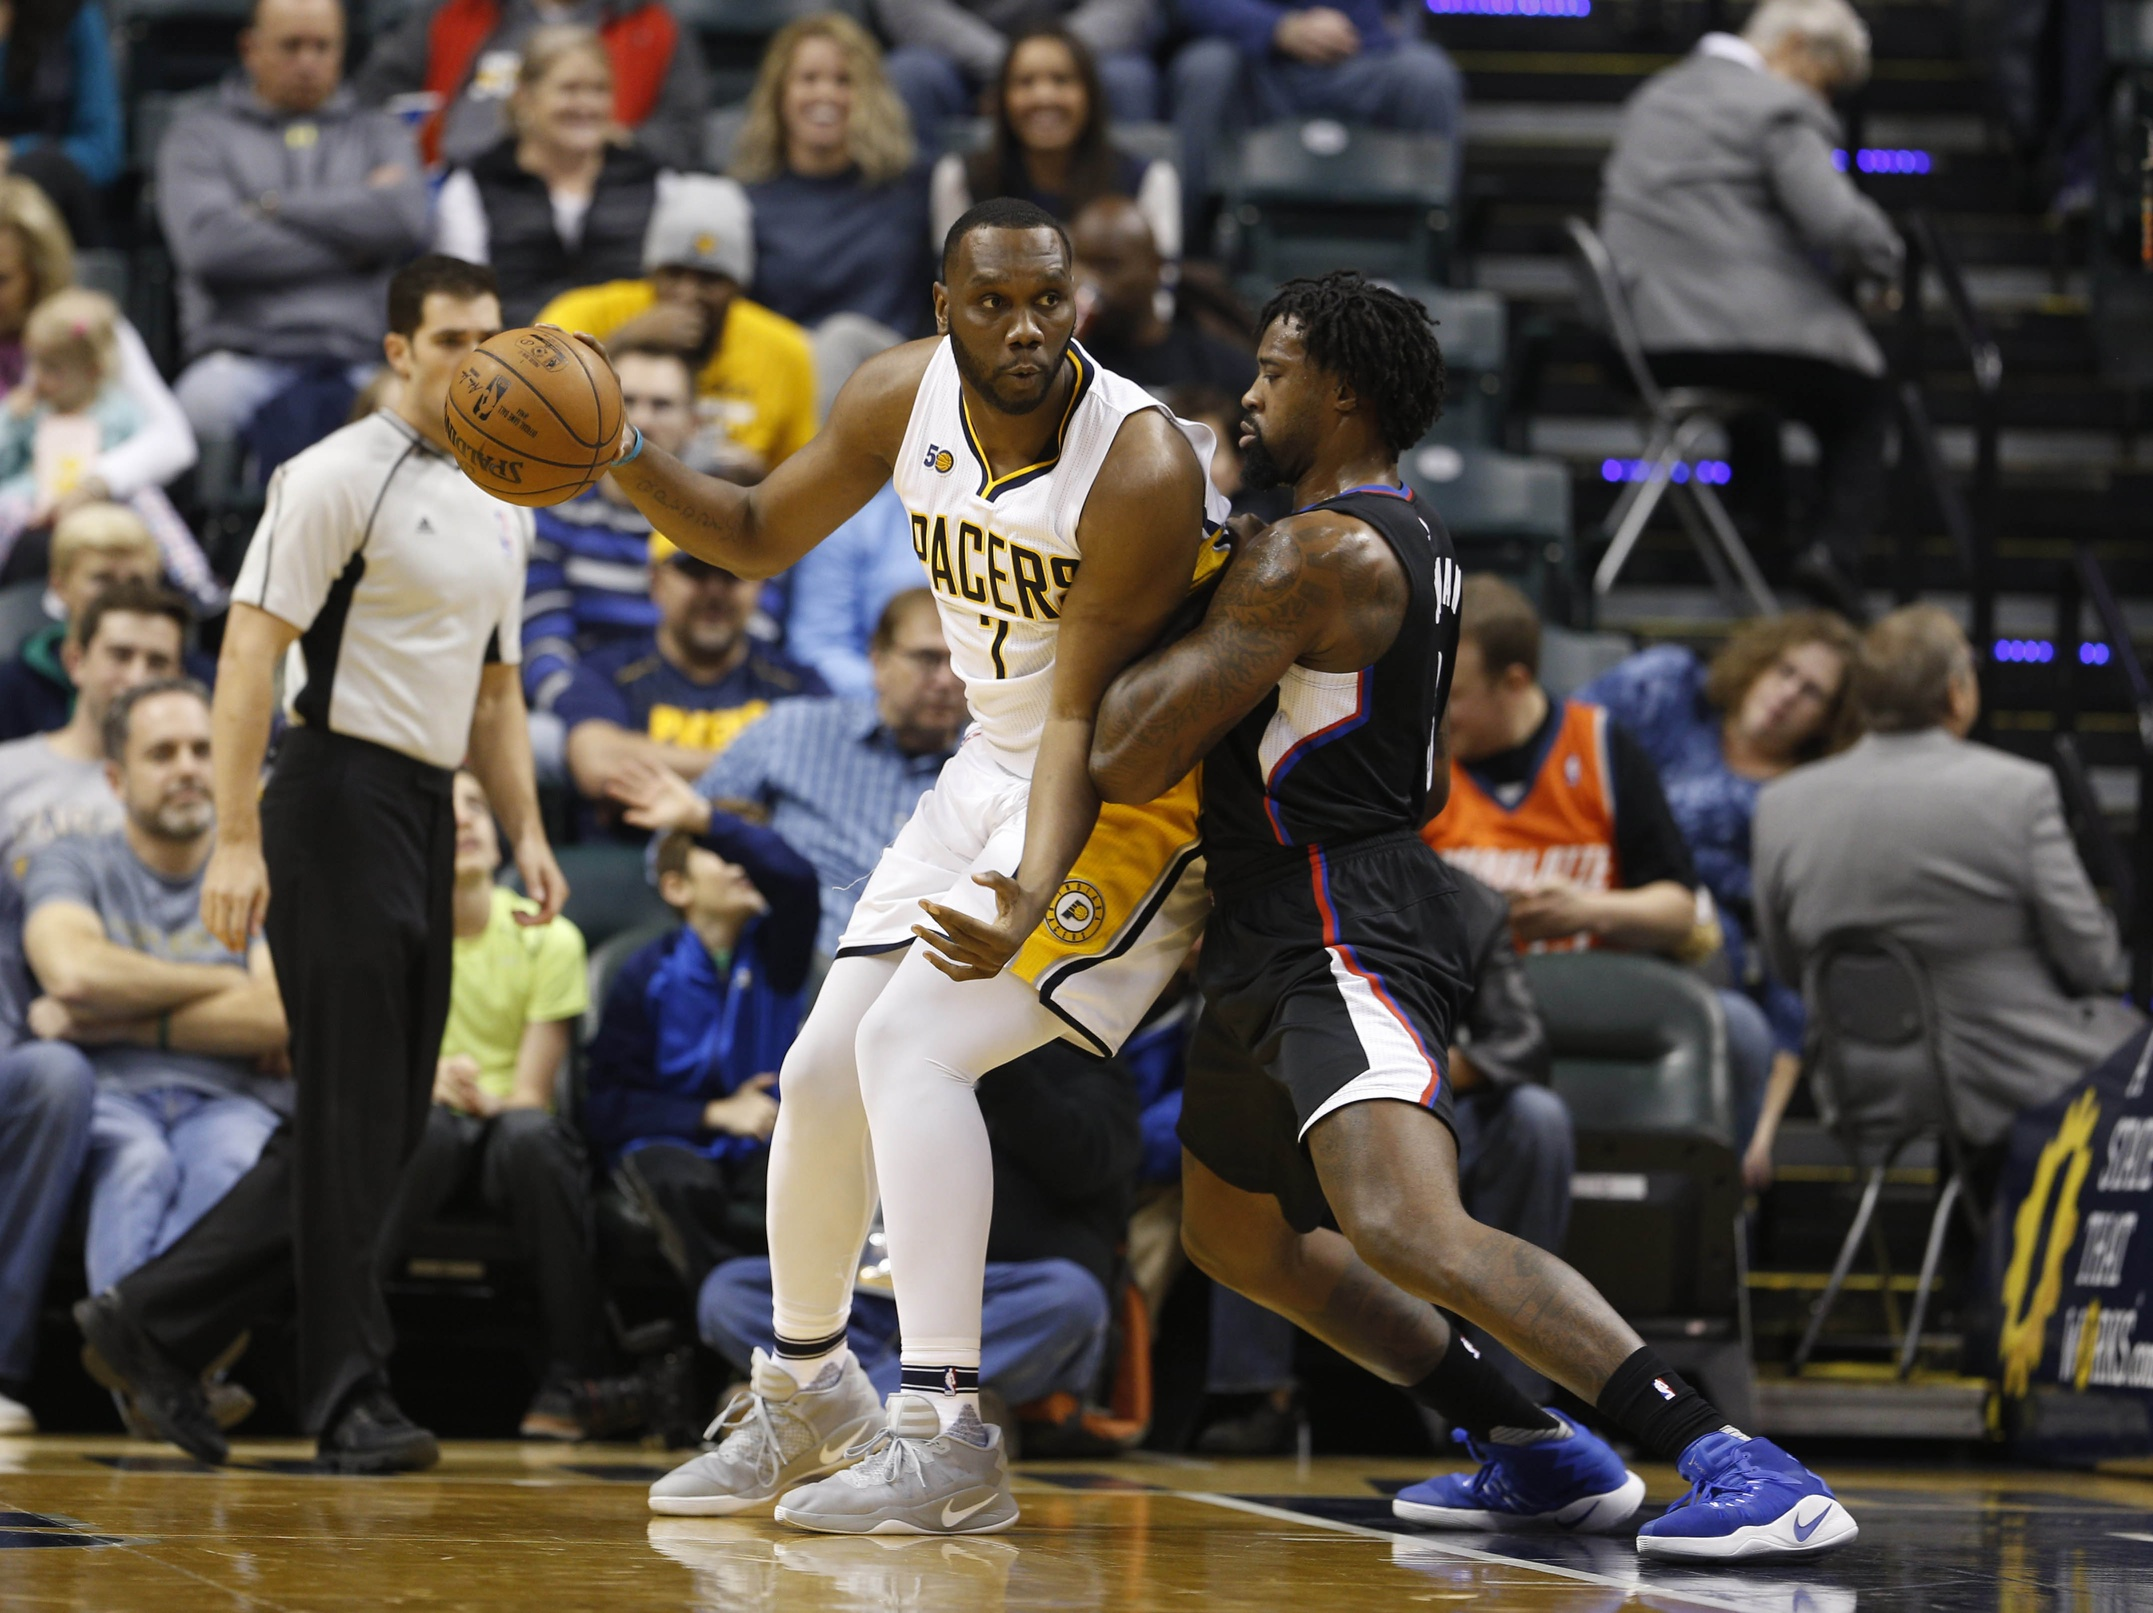 Clippers hope to keep playoff dreams alive against Pacers